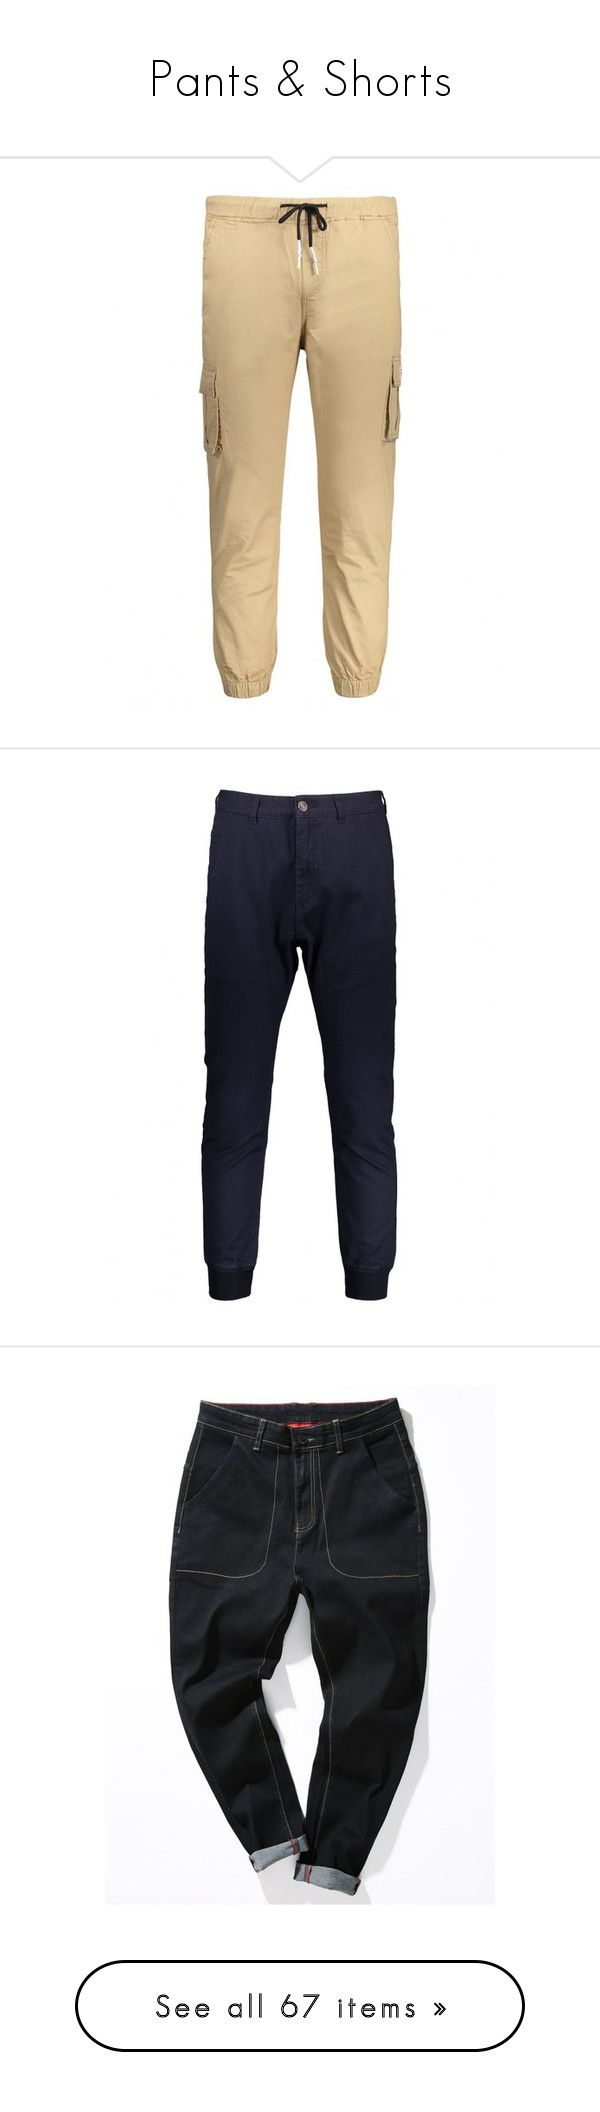 """""""Pants & Shorts"""" by zaful-men ❤ liked on Polyvore featuring men's fashion, men's clothing, men's activewear, men's activewear pants, mens activewear pants, jeans, loose fit jeans, zipper jeans, zipper pocket jeans and zip fly jeans"""